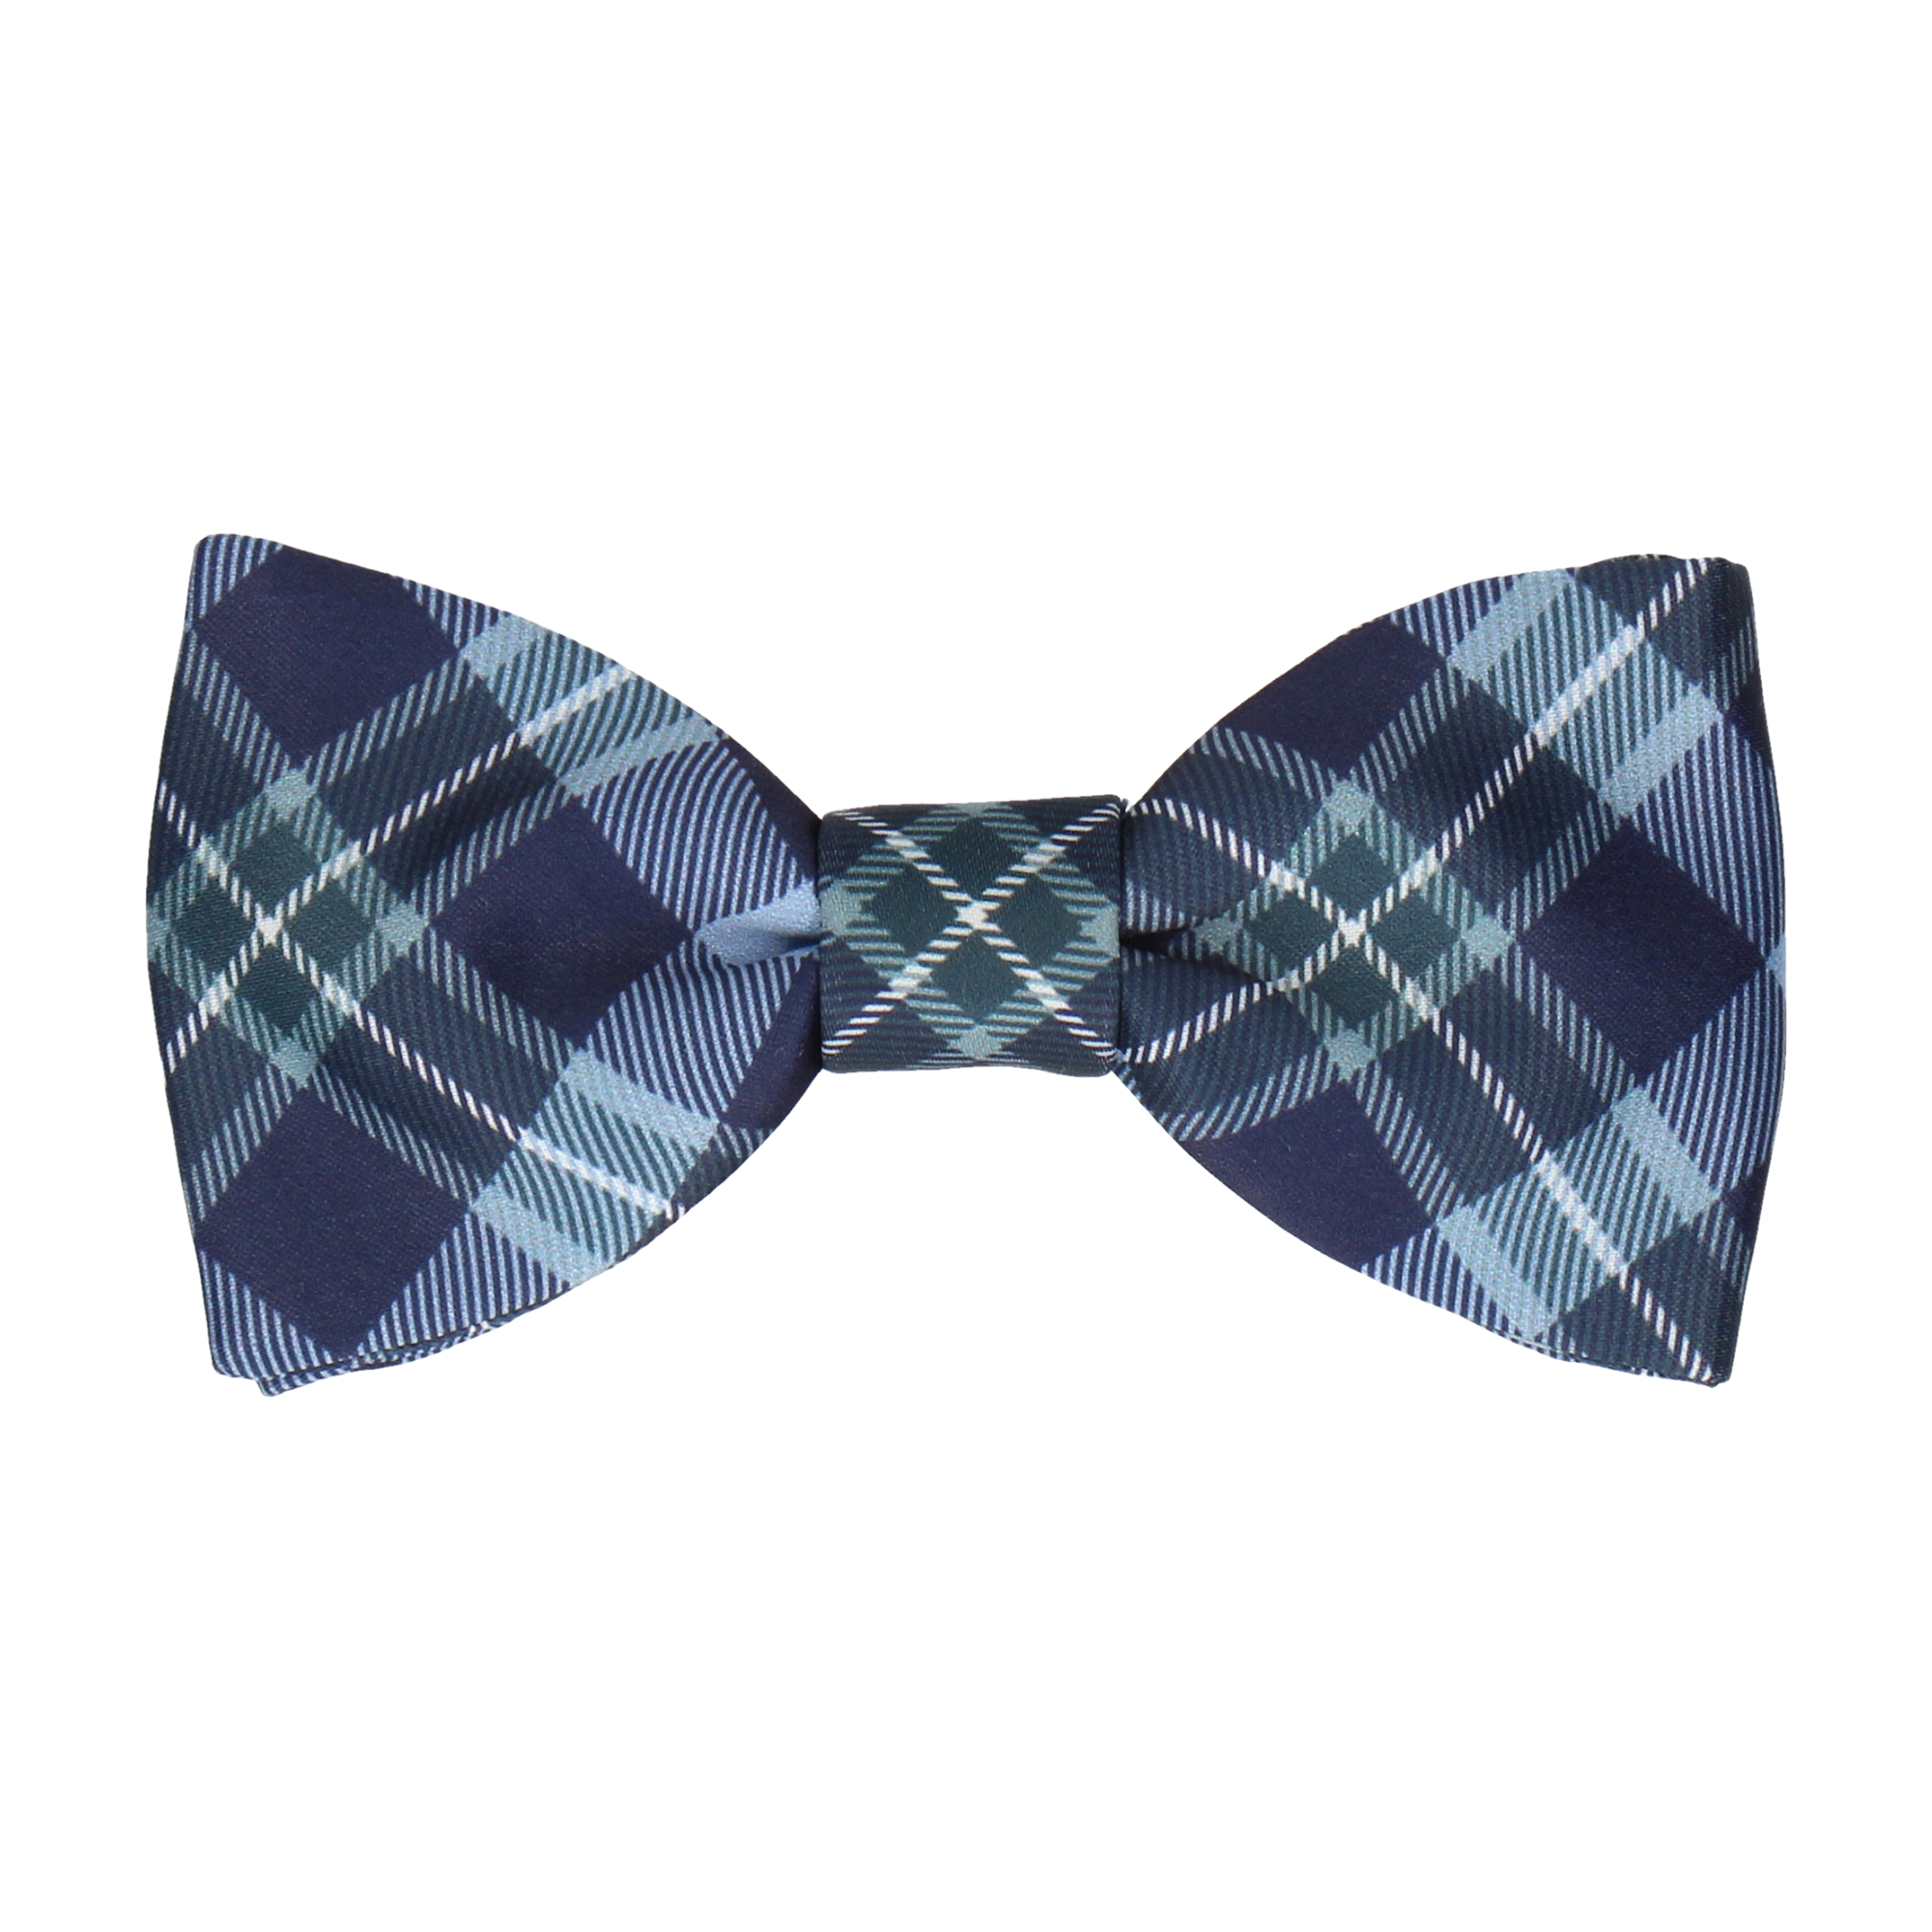 McEwen in Steel Blue Bow Tie